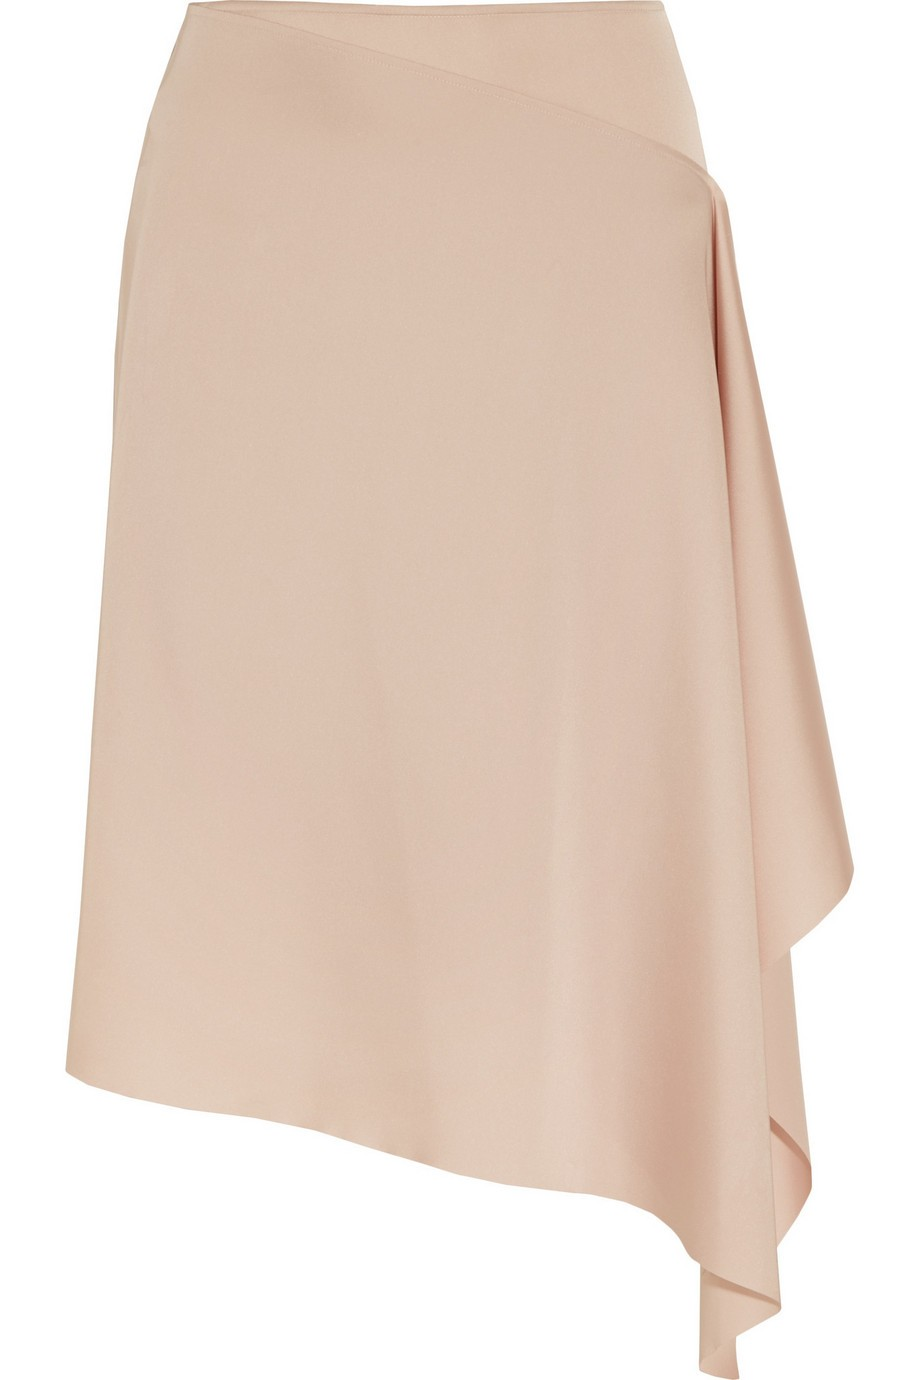 Asymmetric satin skirt